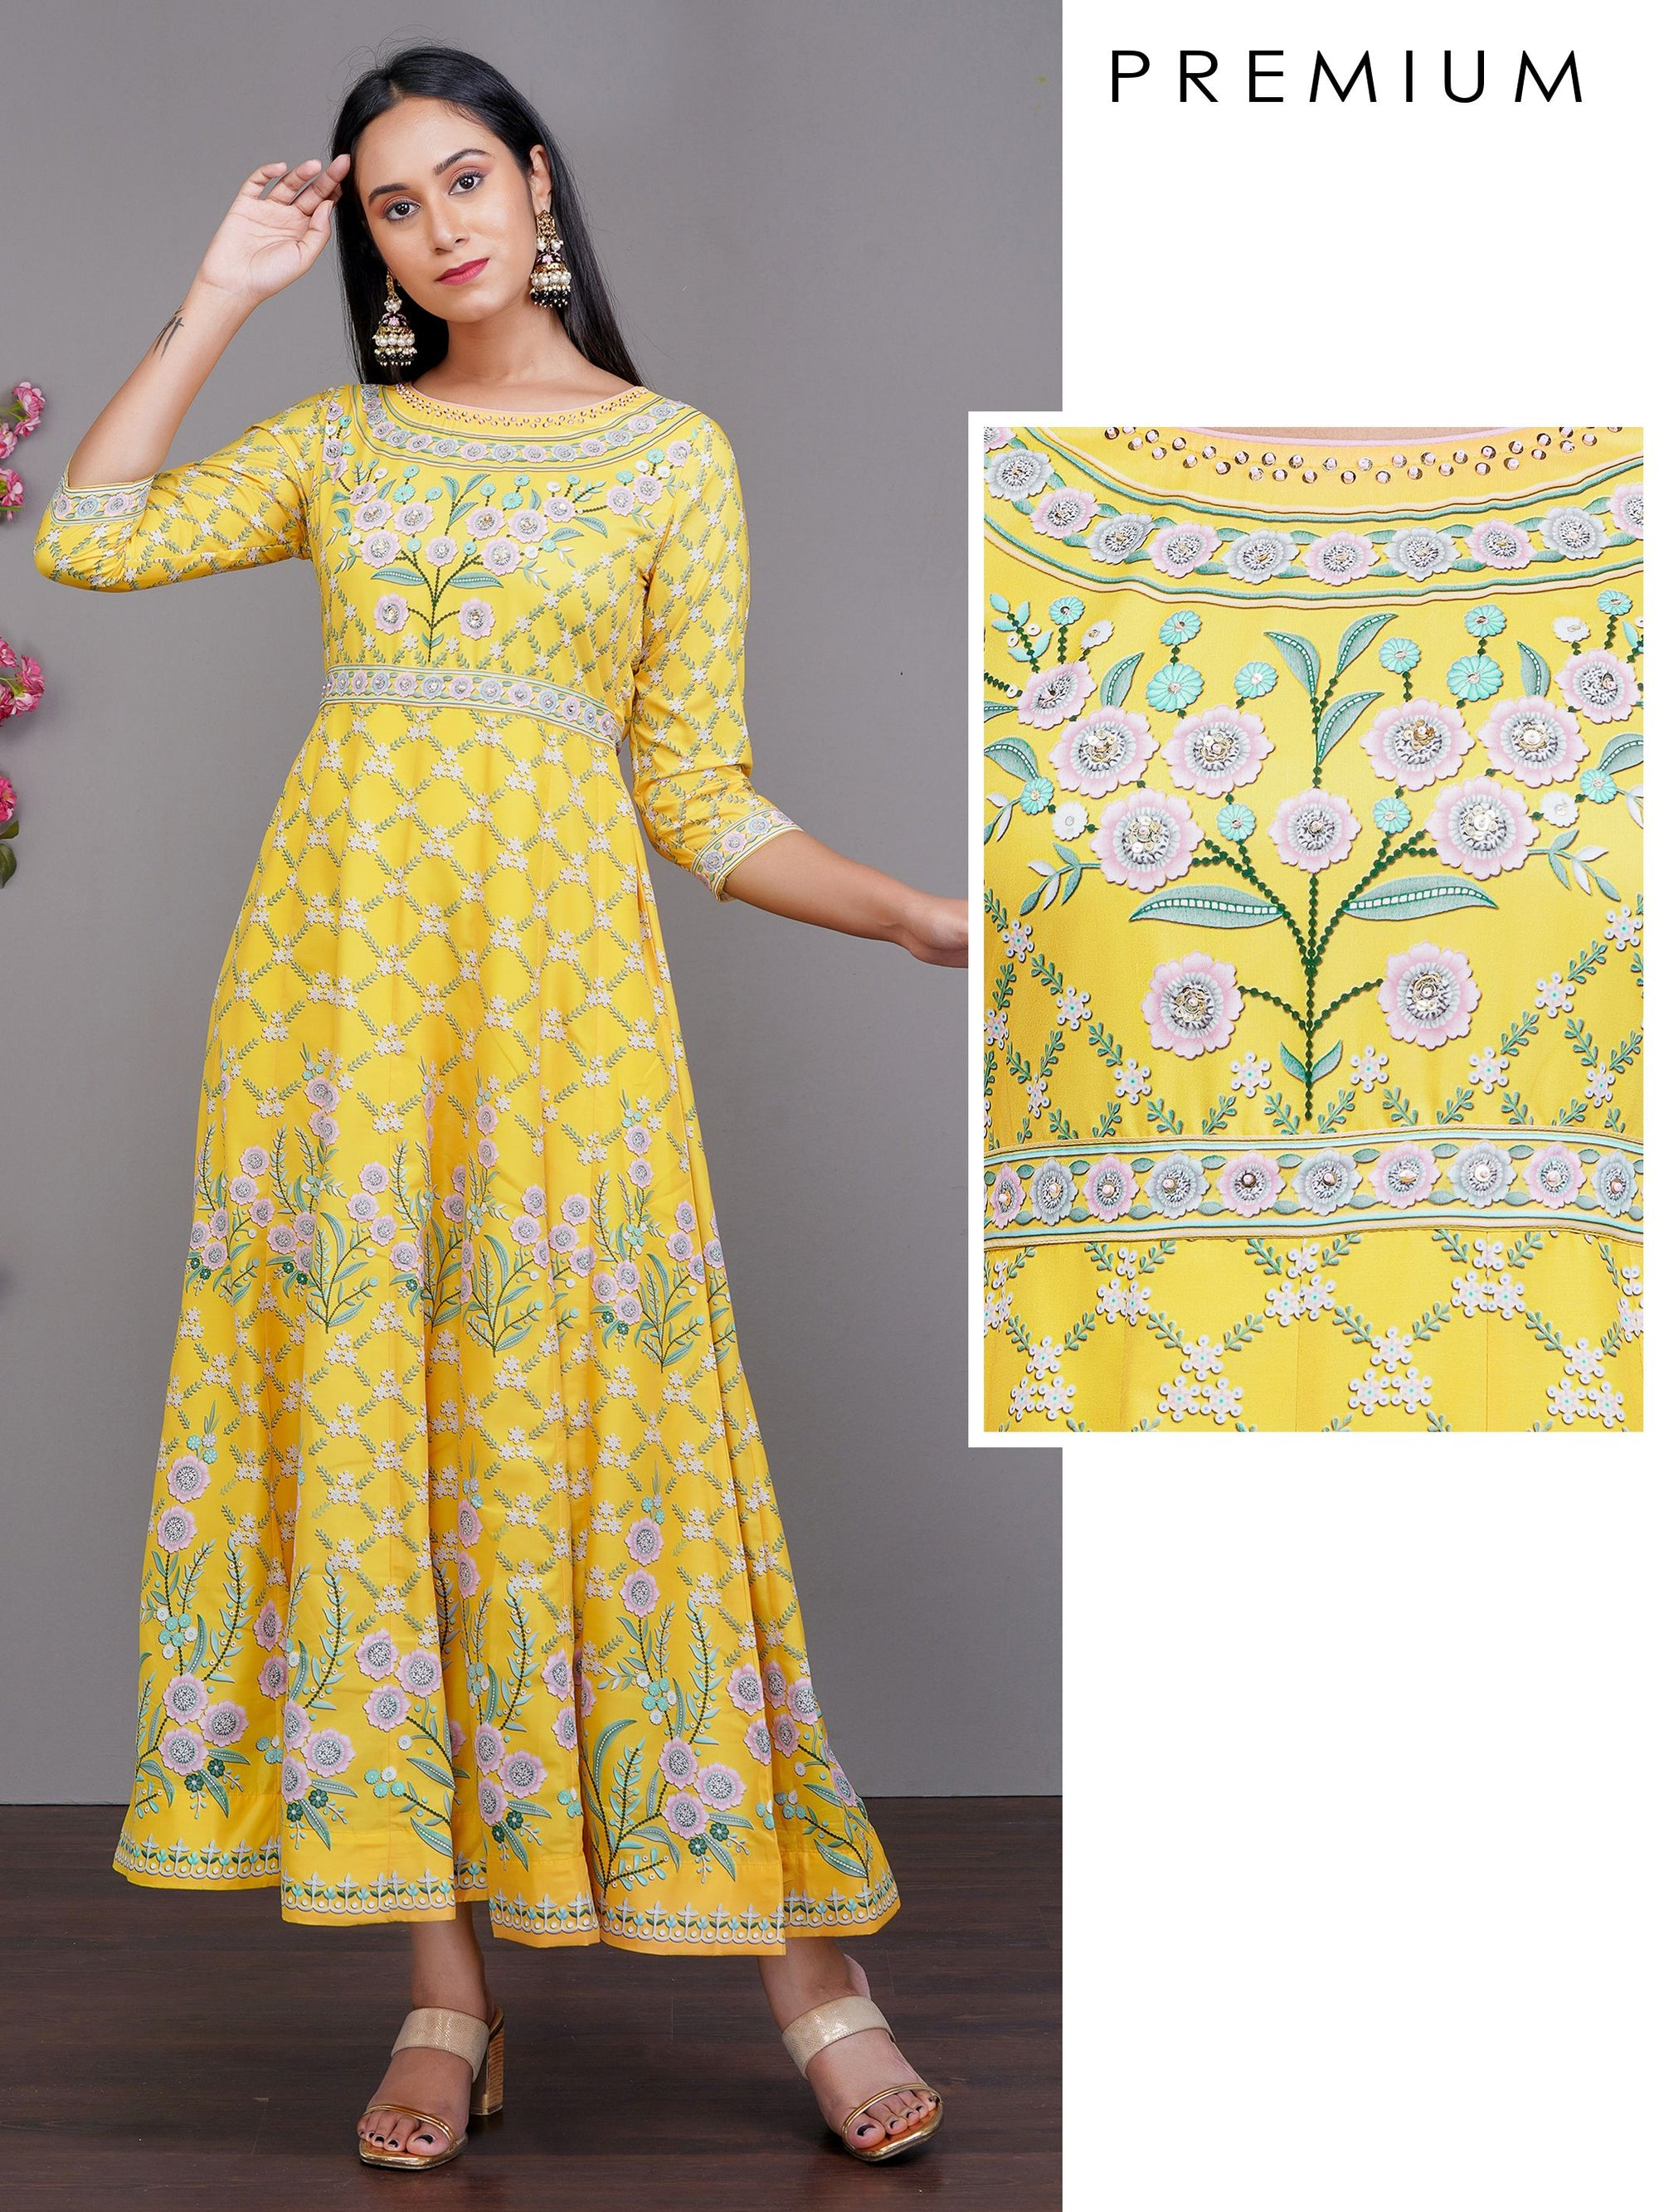 Digital Floral Printed & Multi Panel Premium Sequined Maxi – Yellow